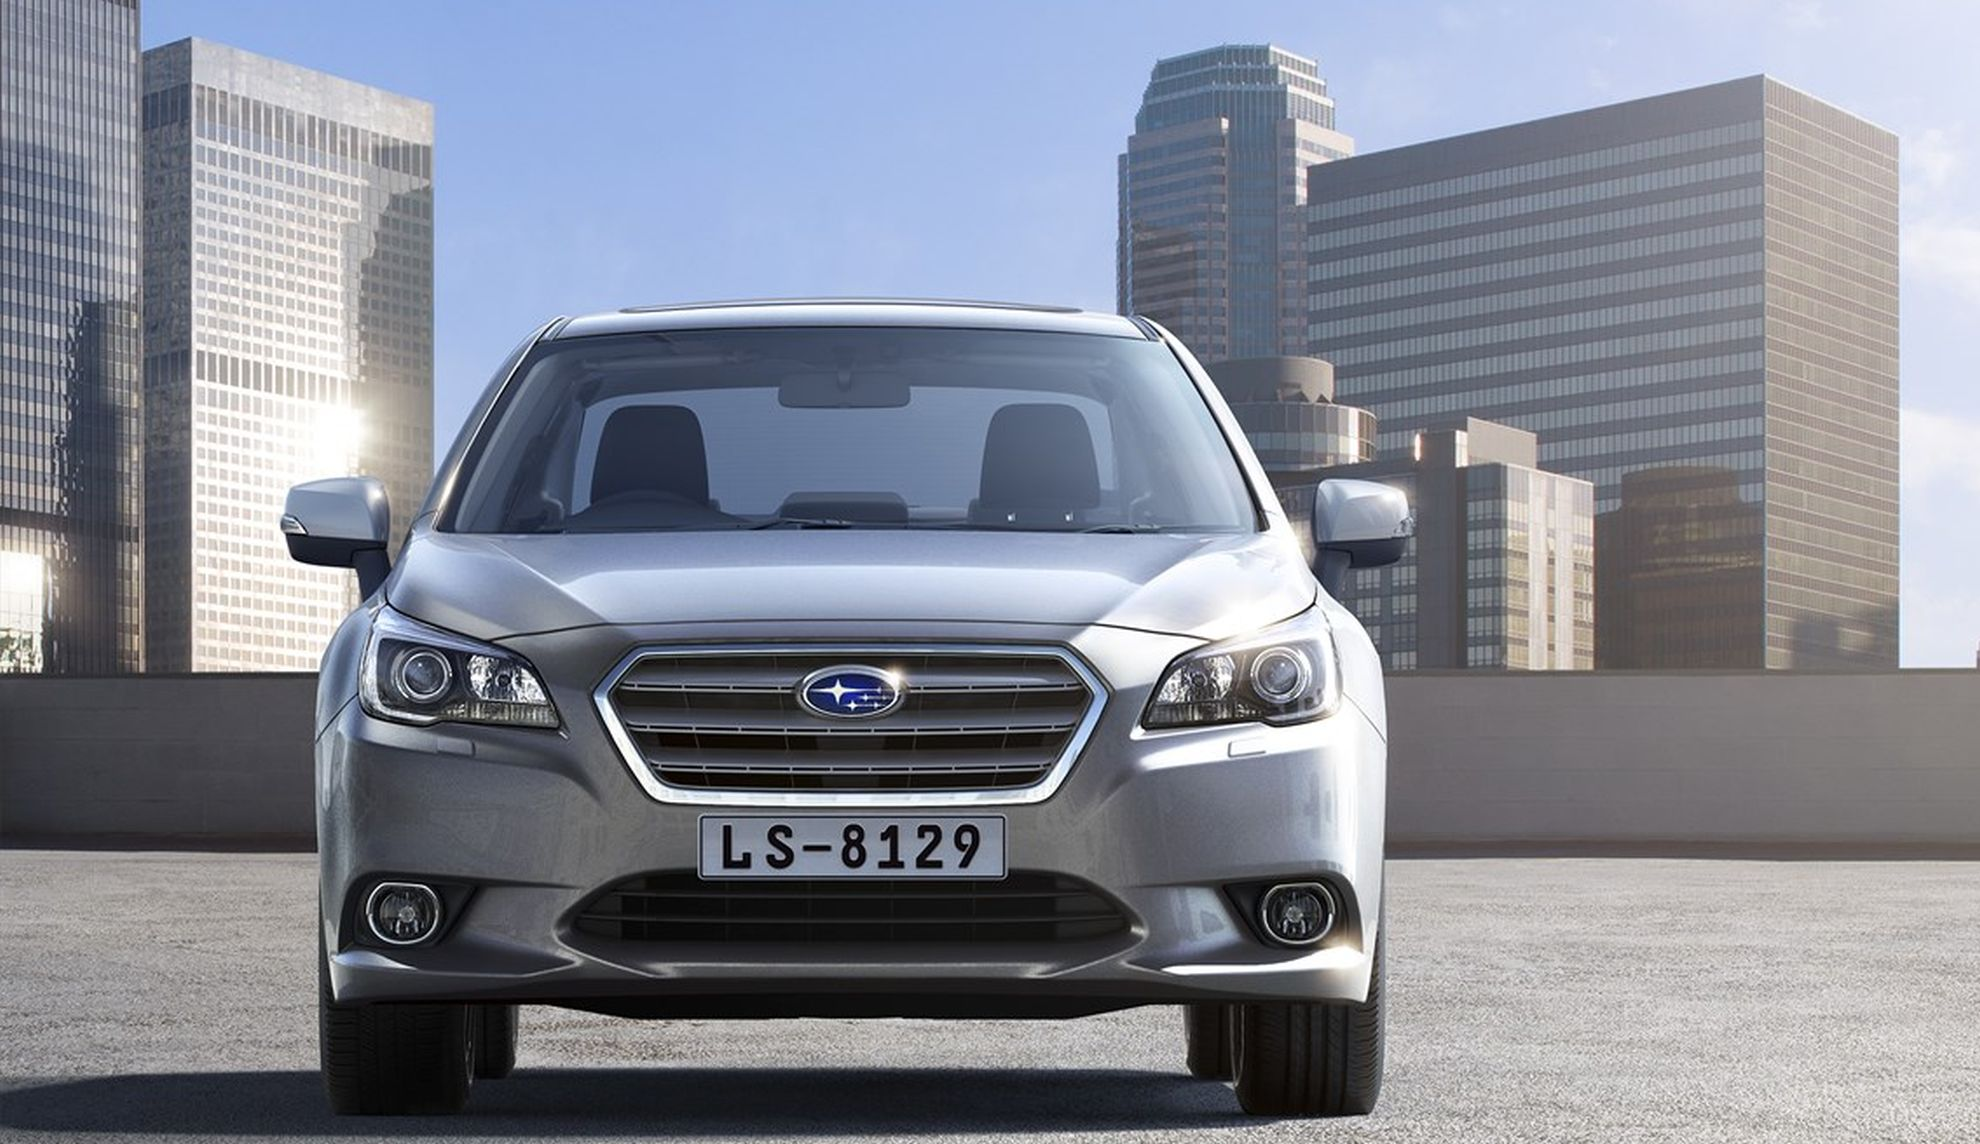 new-SUBARU-LEGACY-R-S-front